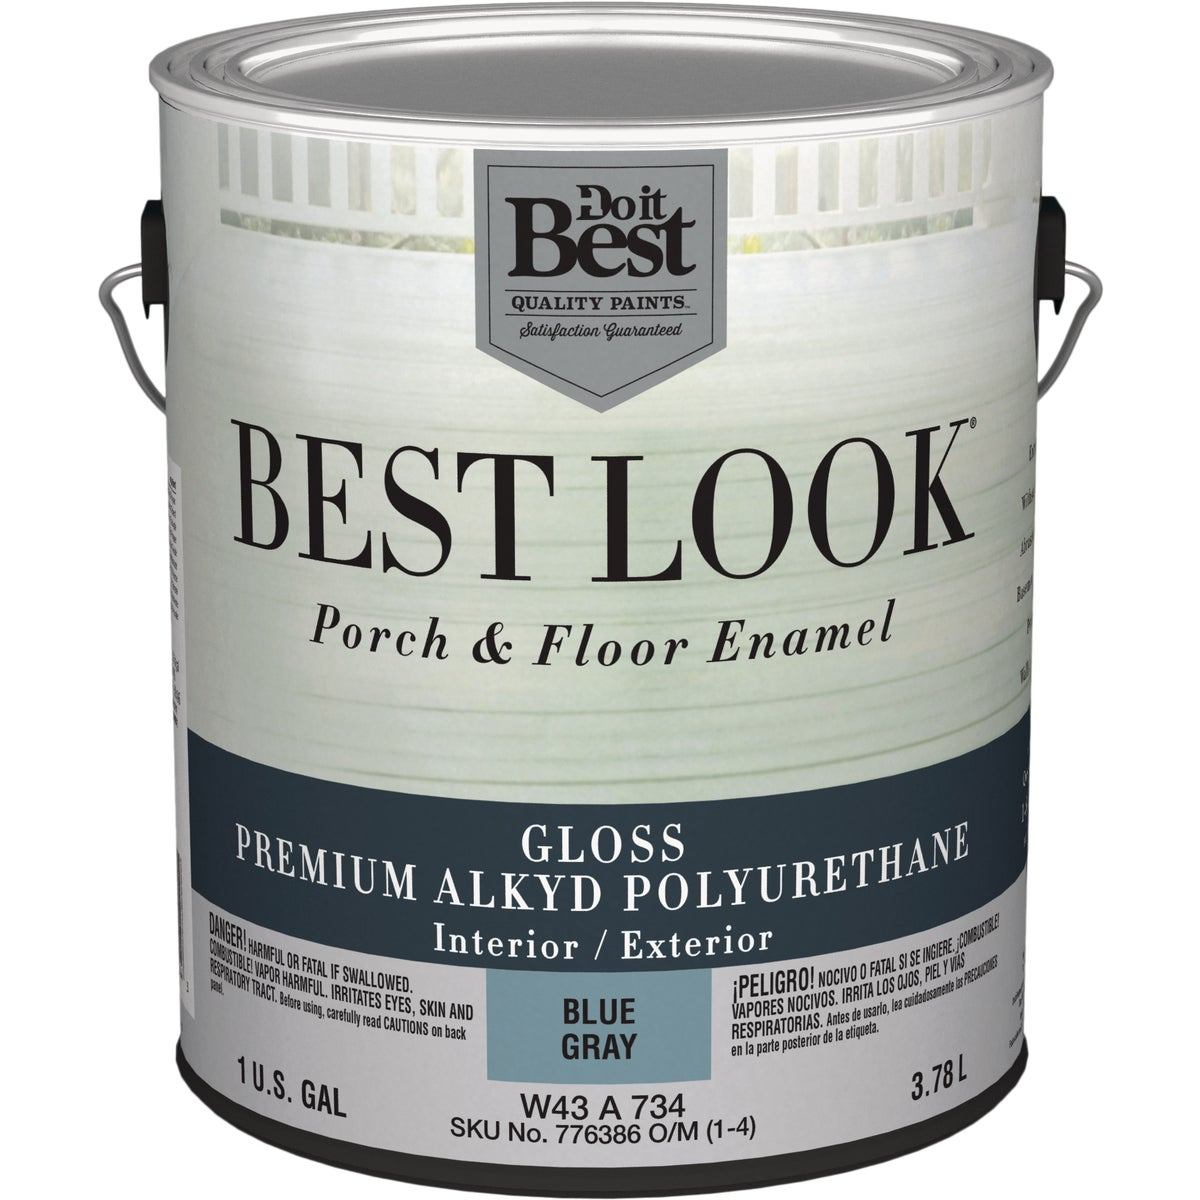 BL GRAY POLY FLOOR PAINT